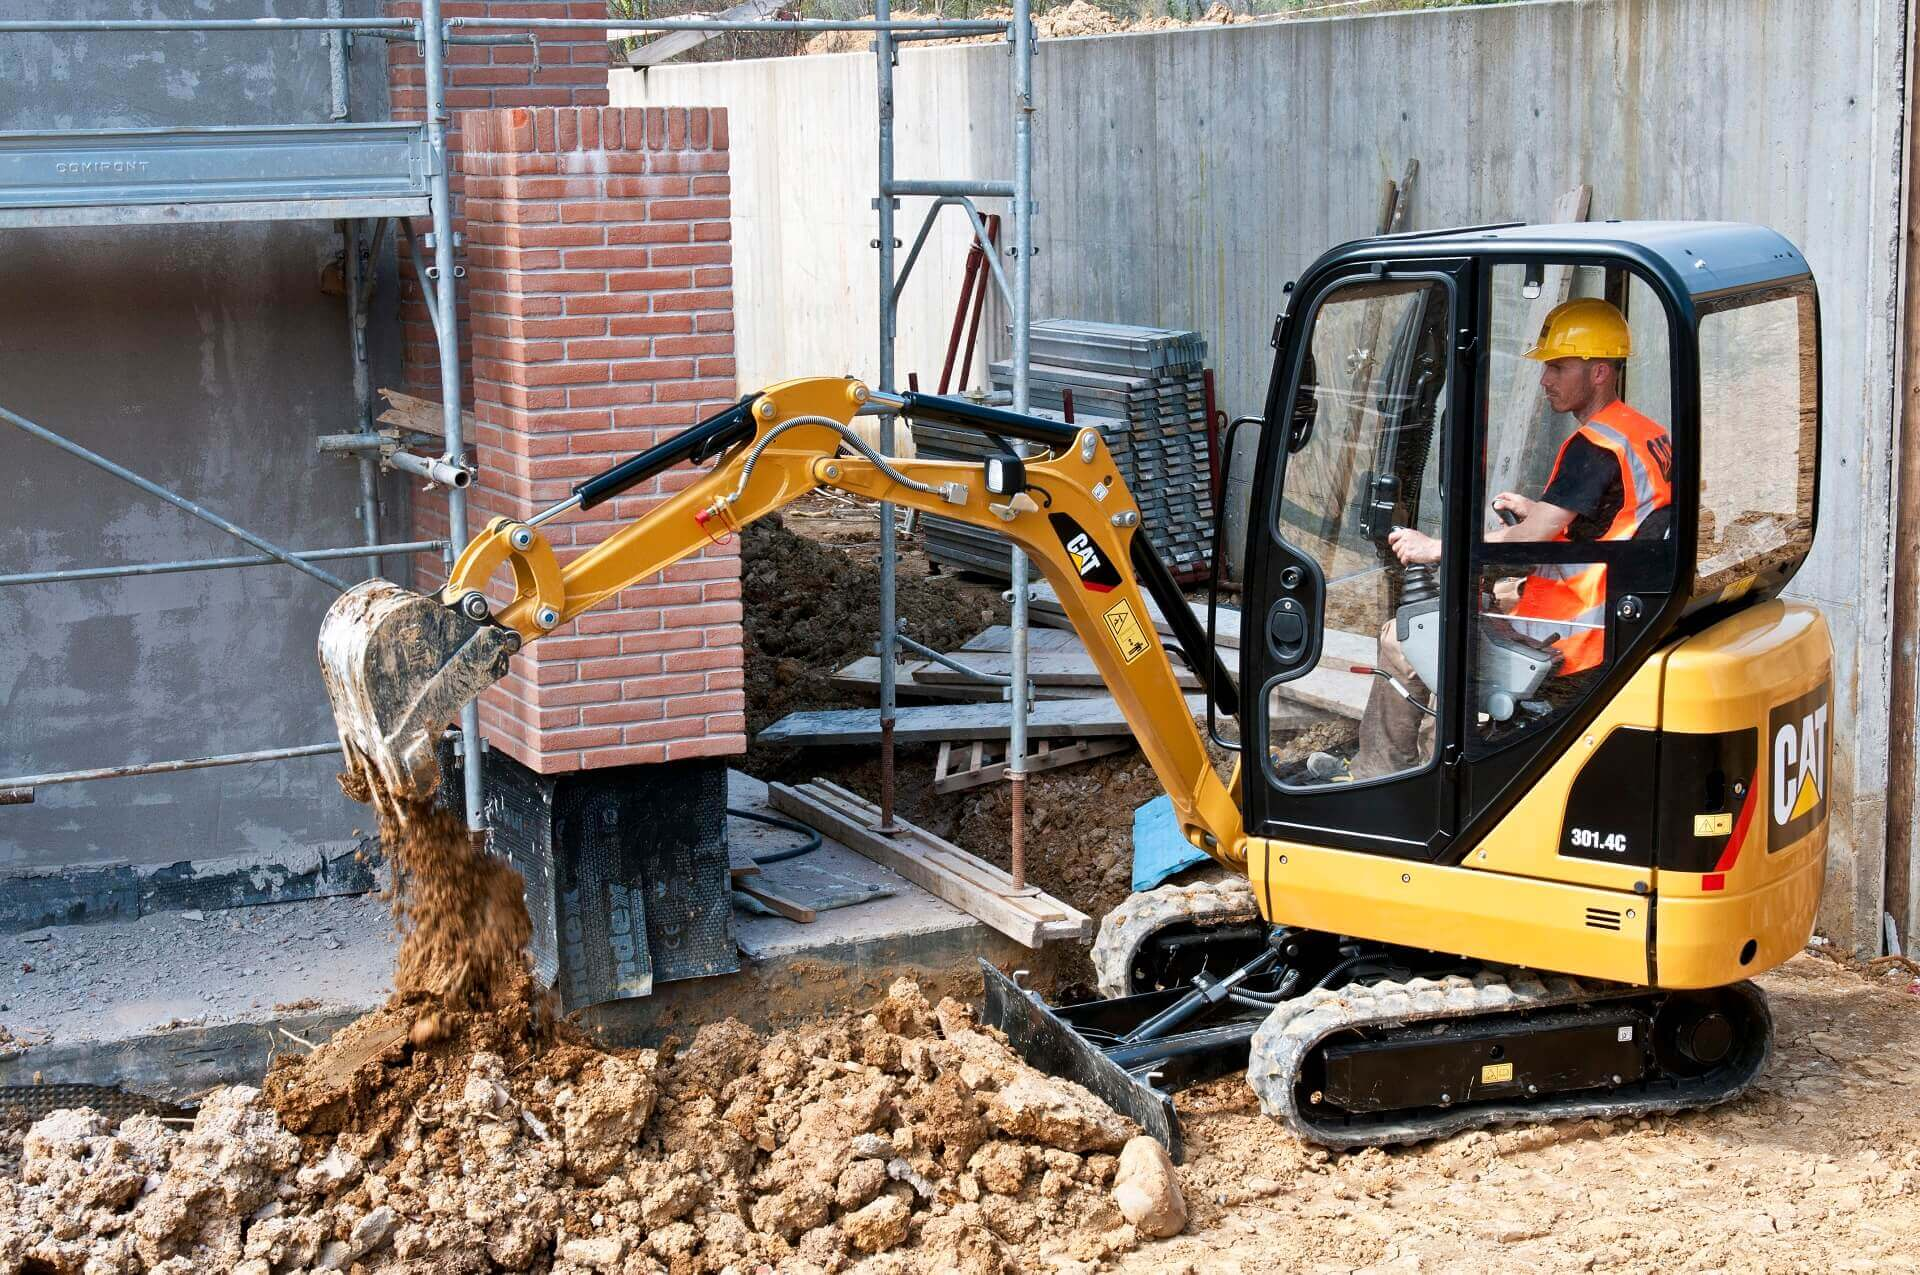 Rental - Productgroep -  Midi en Minigraafmachines - Cat 301.4C